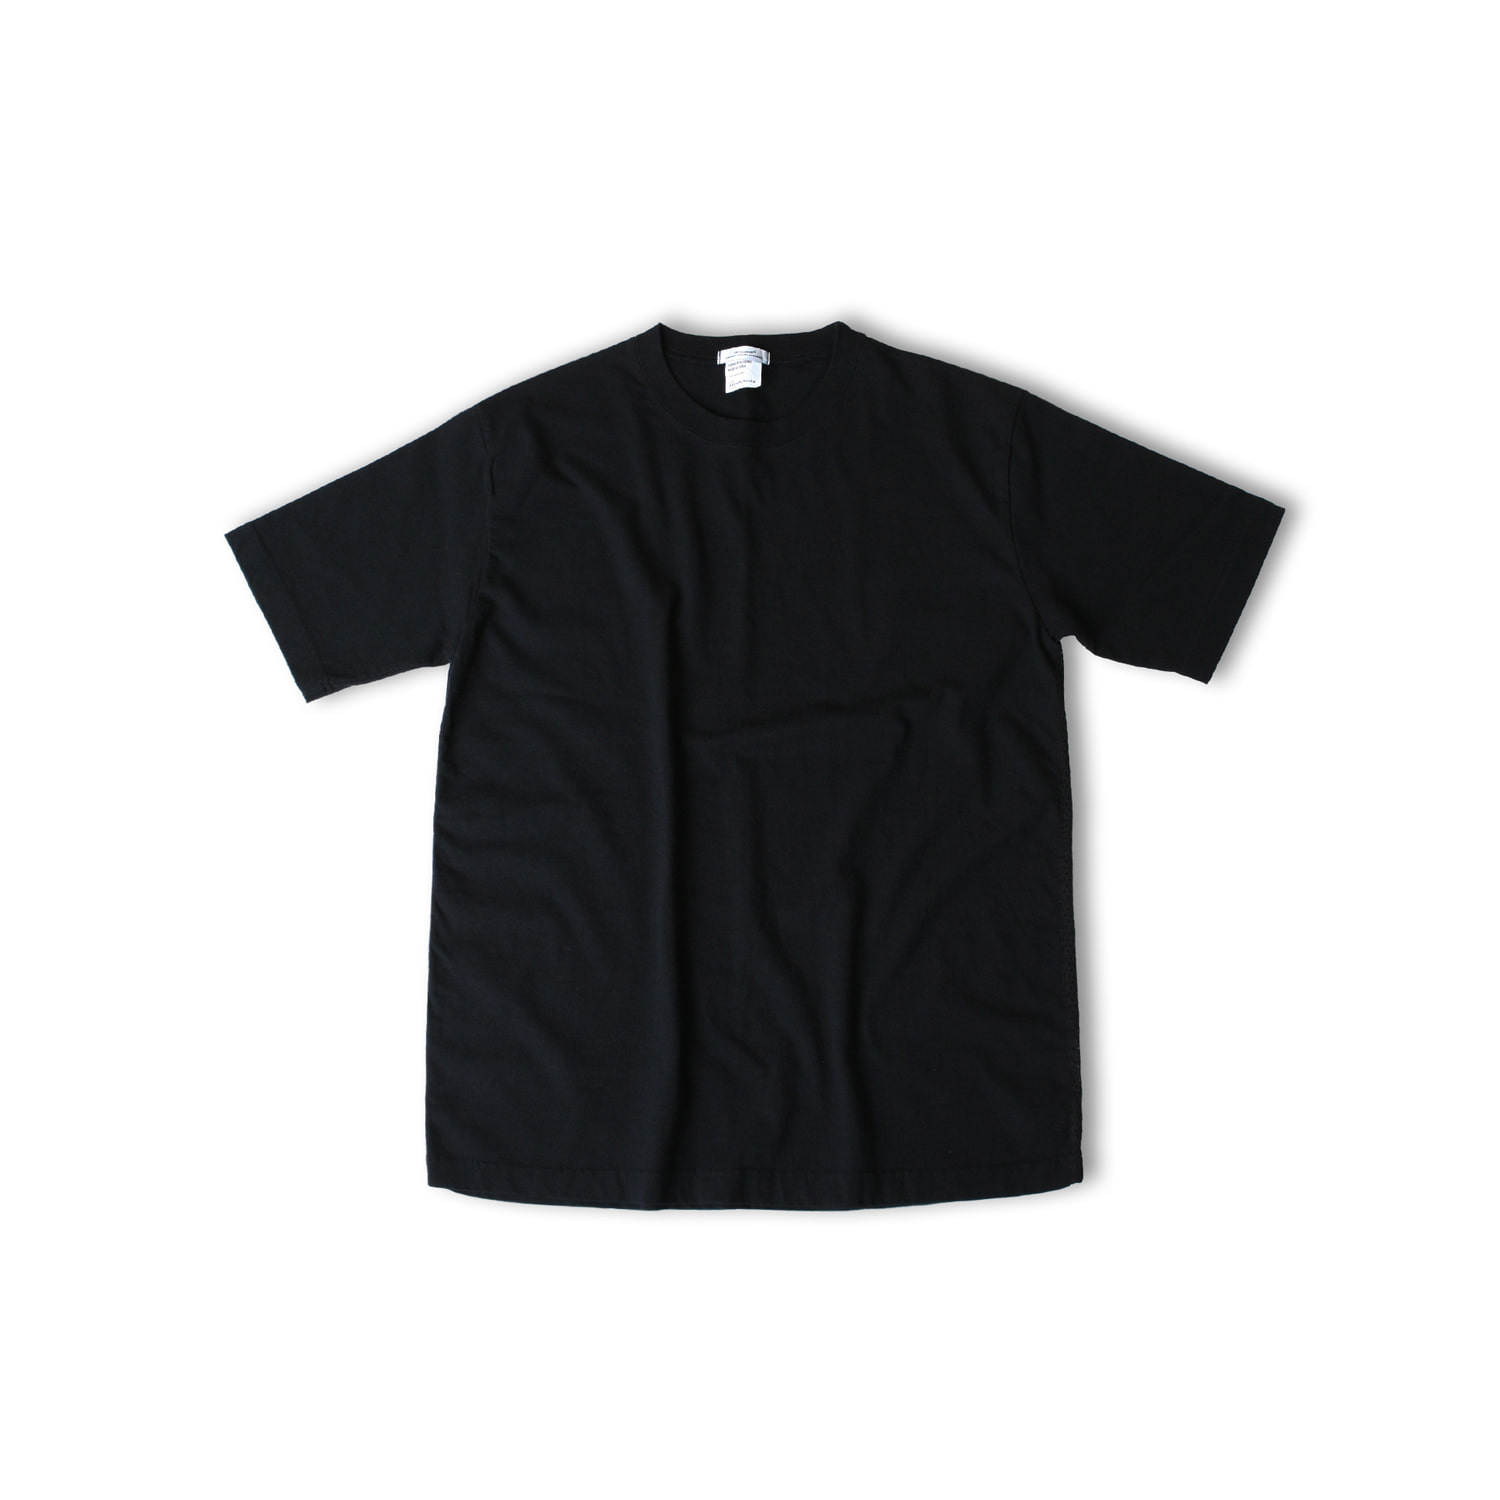 <B>SWELLMOB</B><br>Breathe vent t-shirts<br>-black-